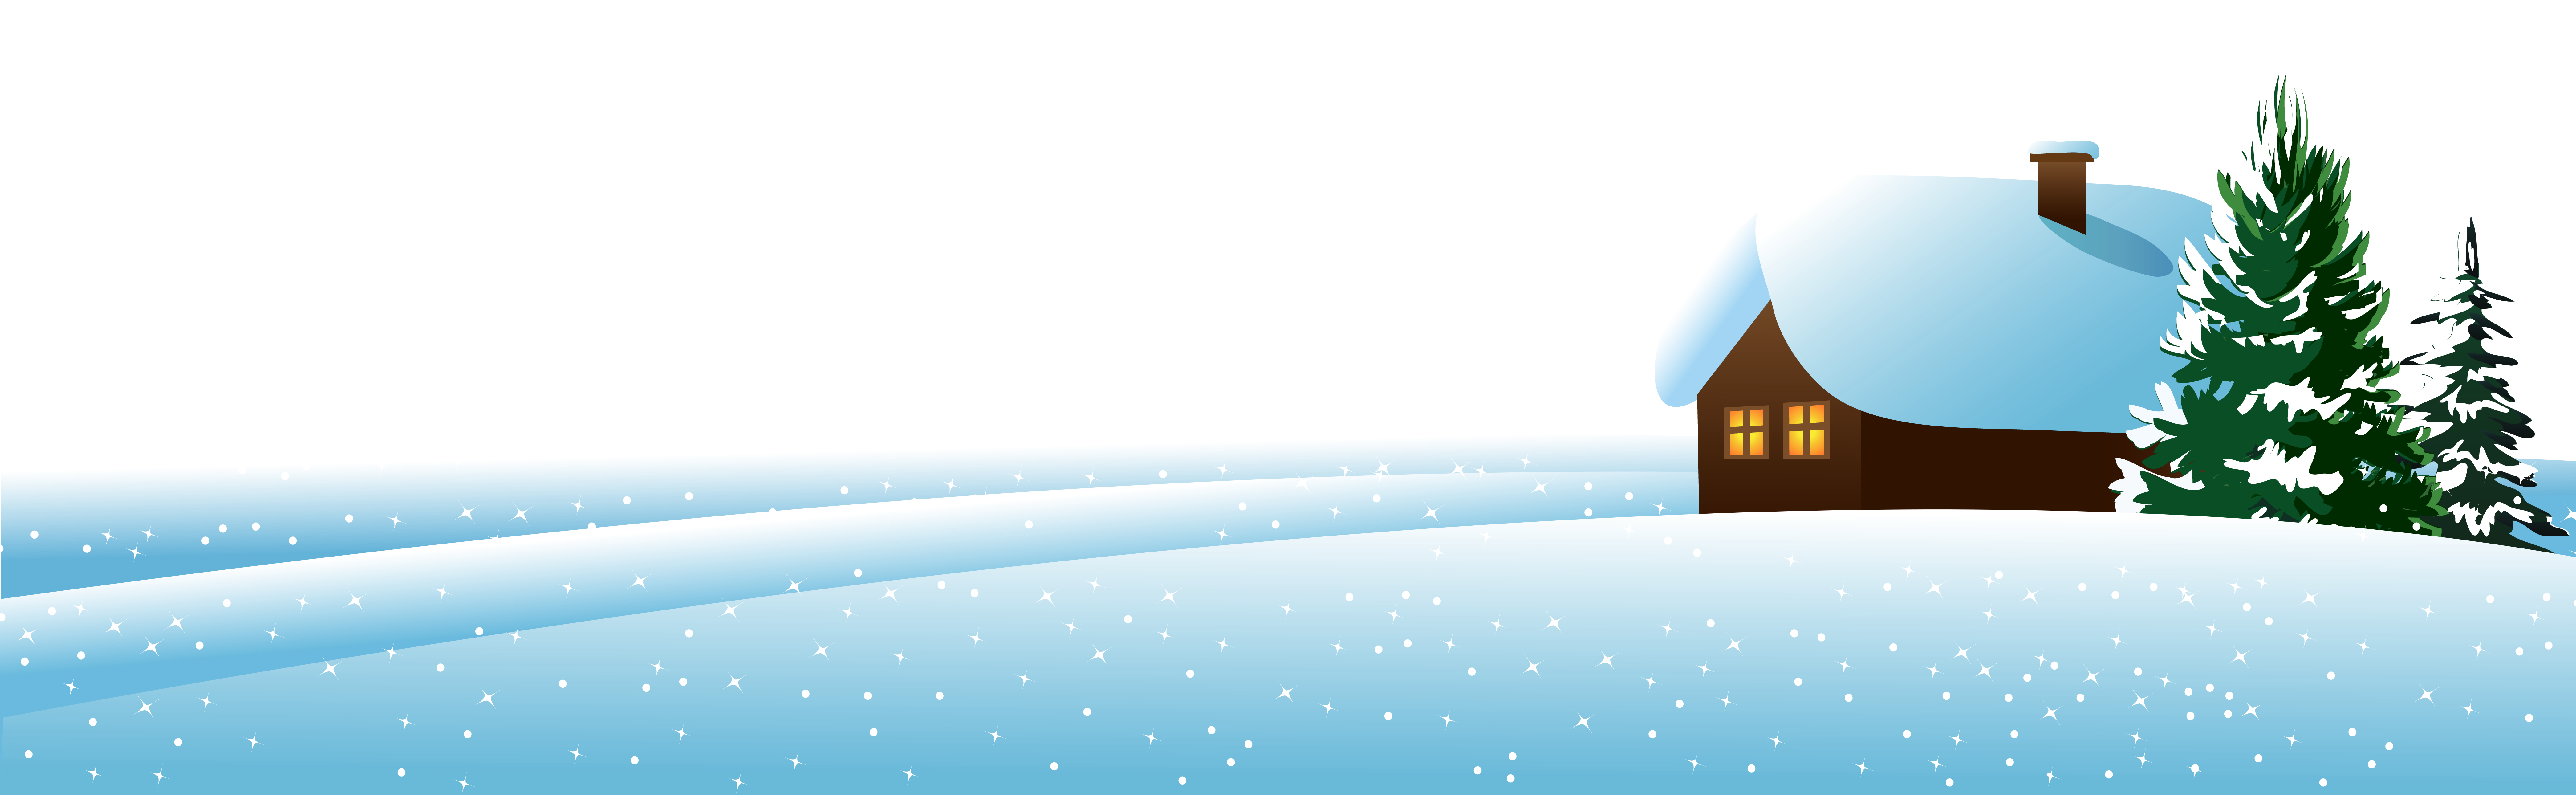 Winter clipart png. House and rees ground